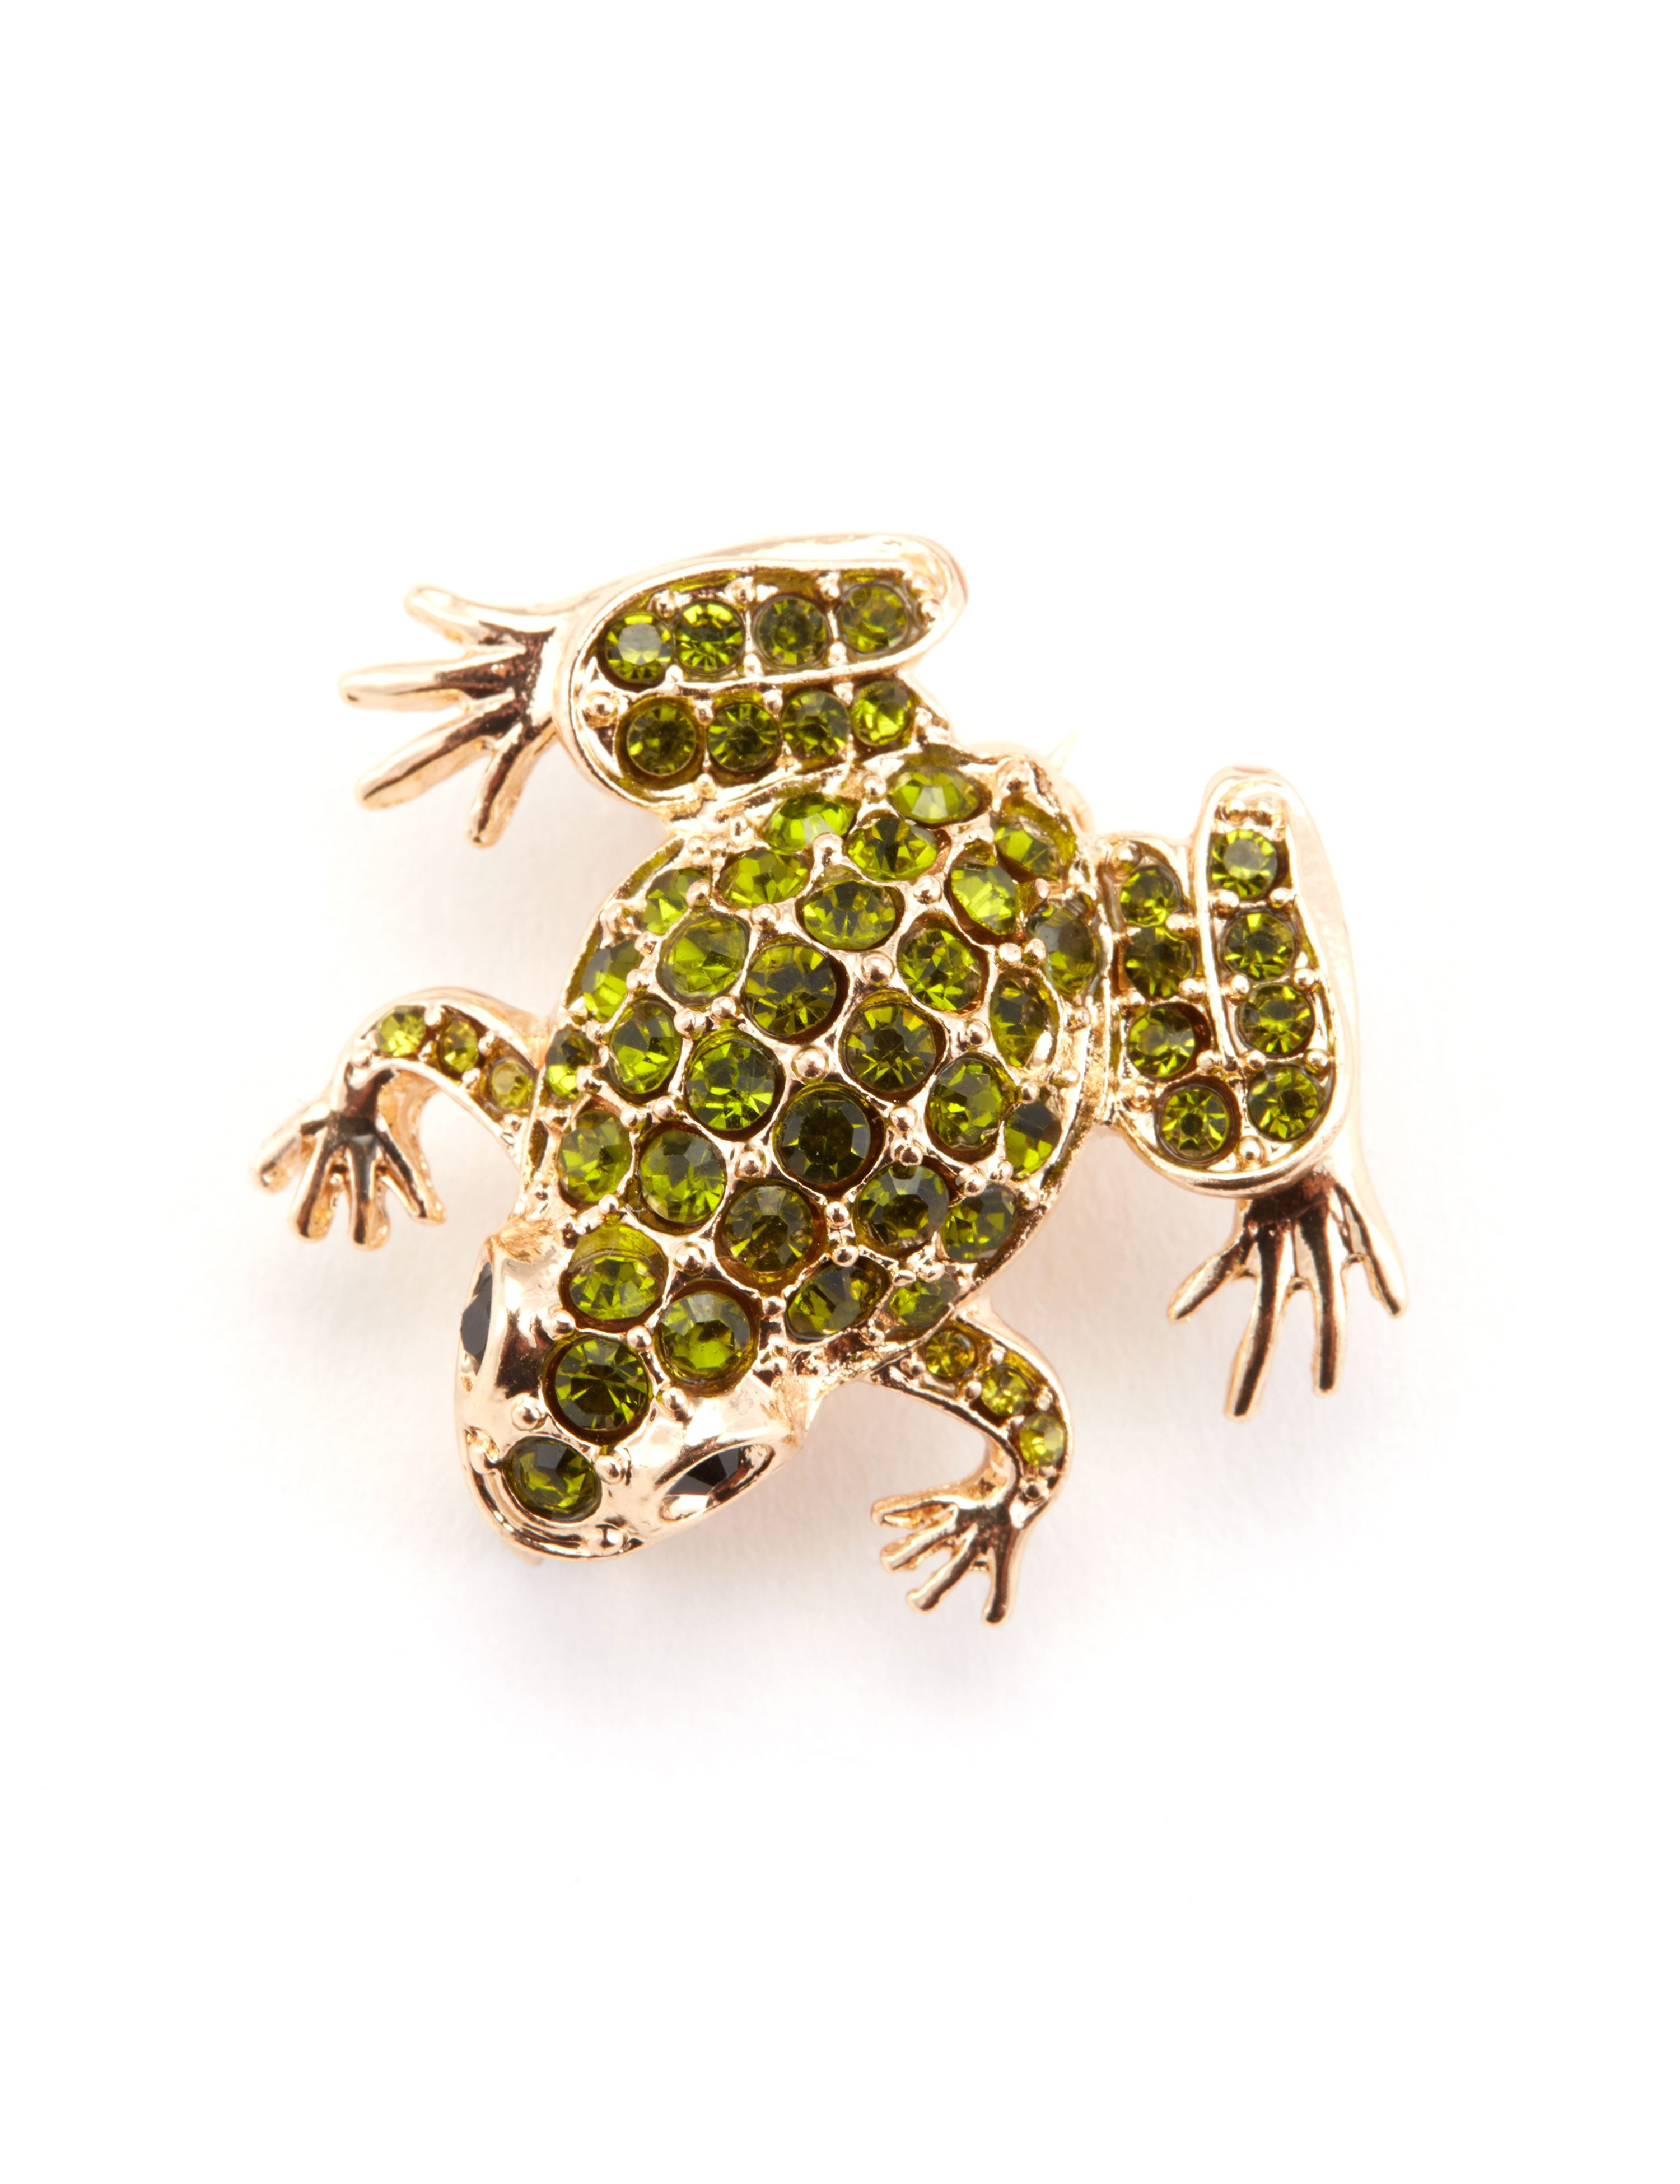 1950s Costume Jewelry Frog Pin $12.00 AT vintagedancer.com